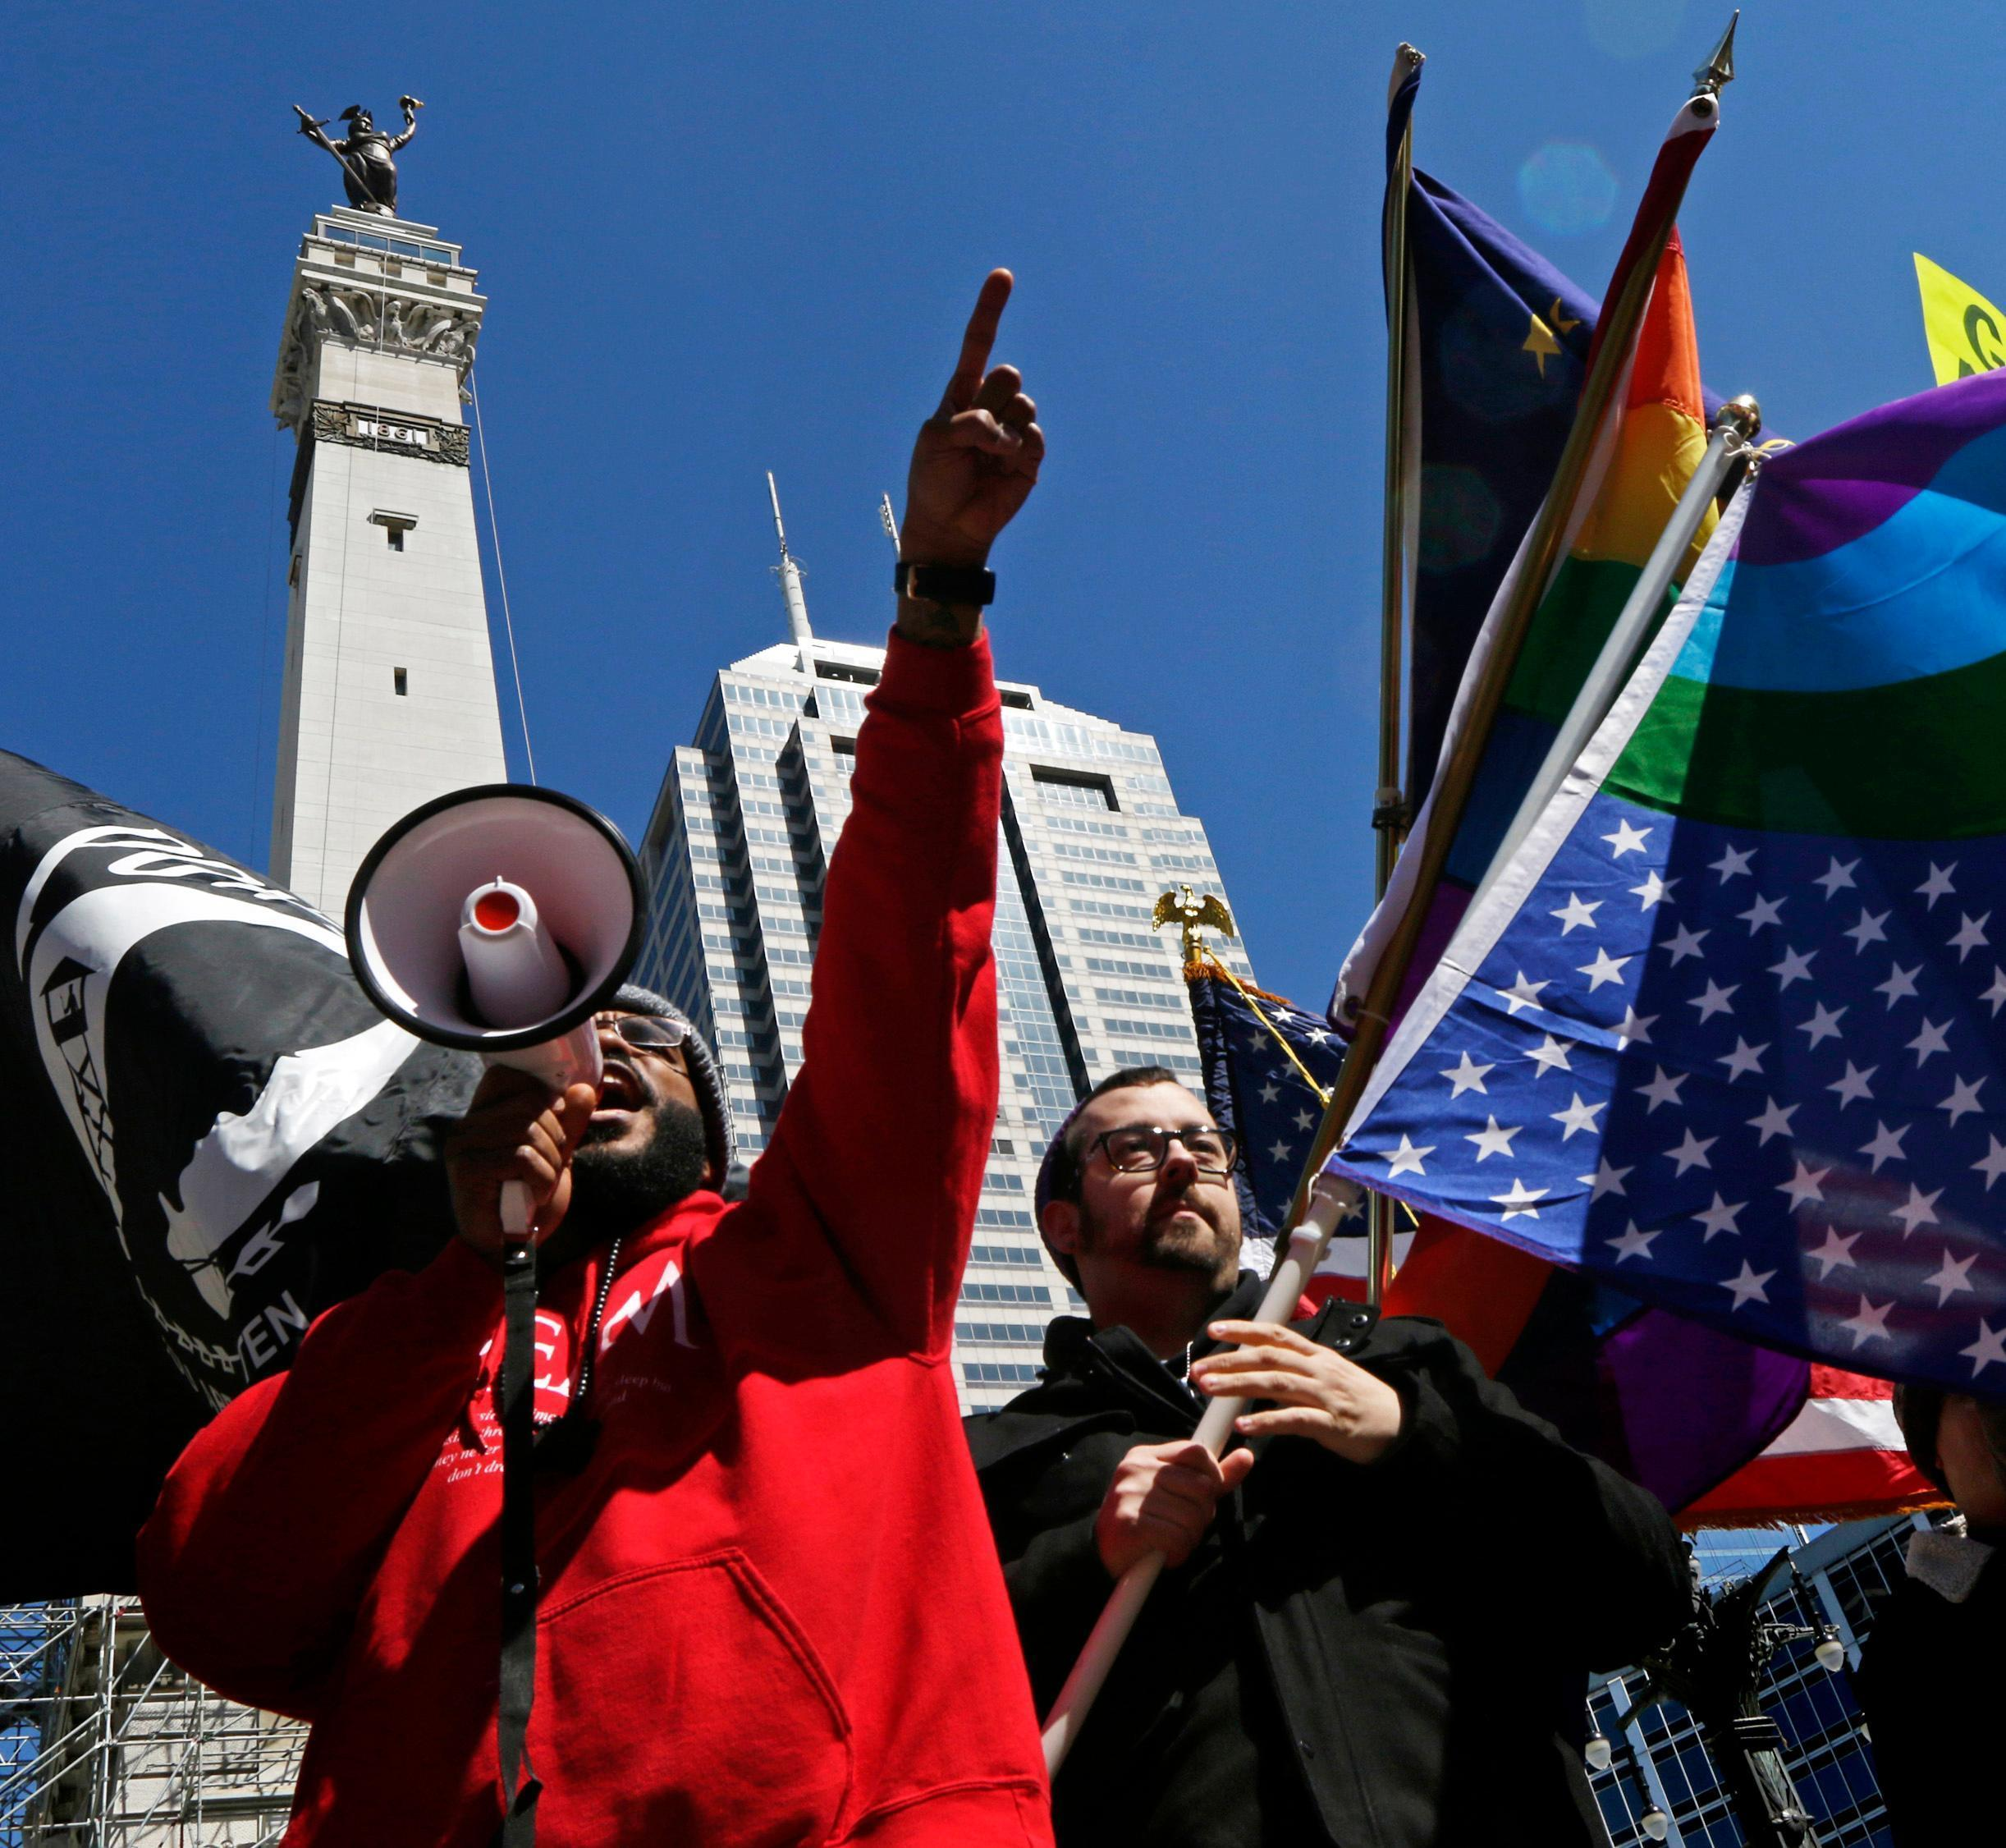 What makes Indiana's religious freedom law different?